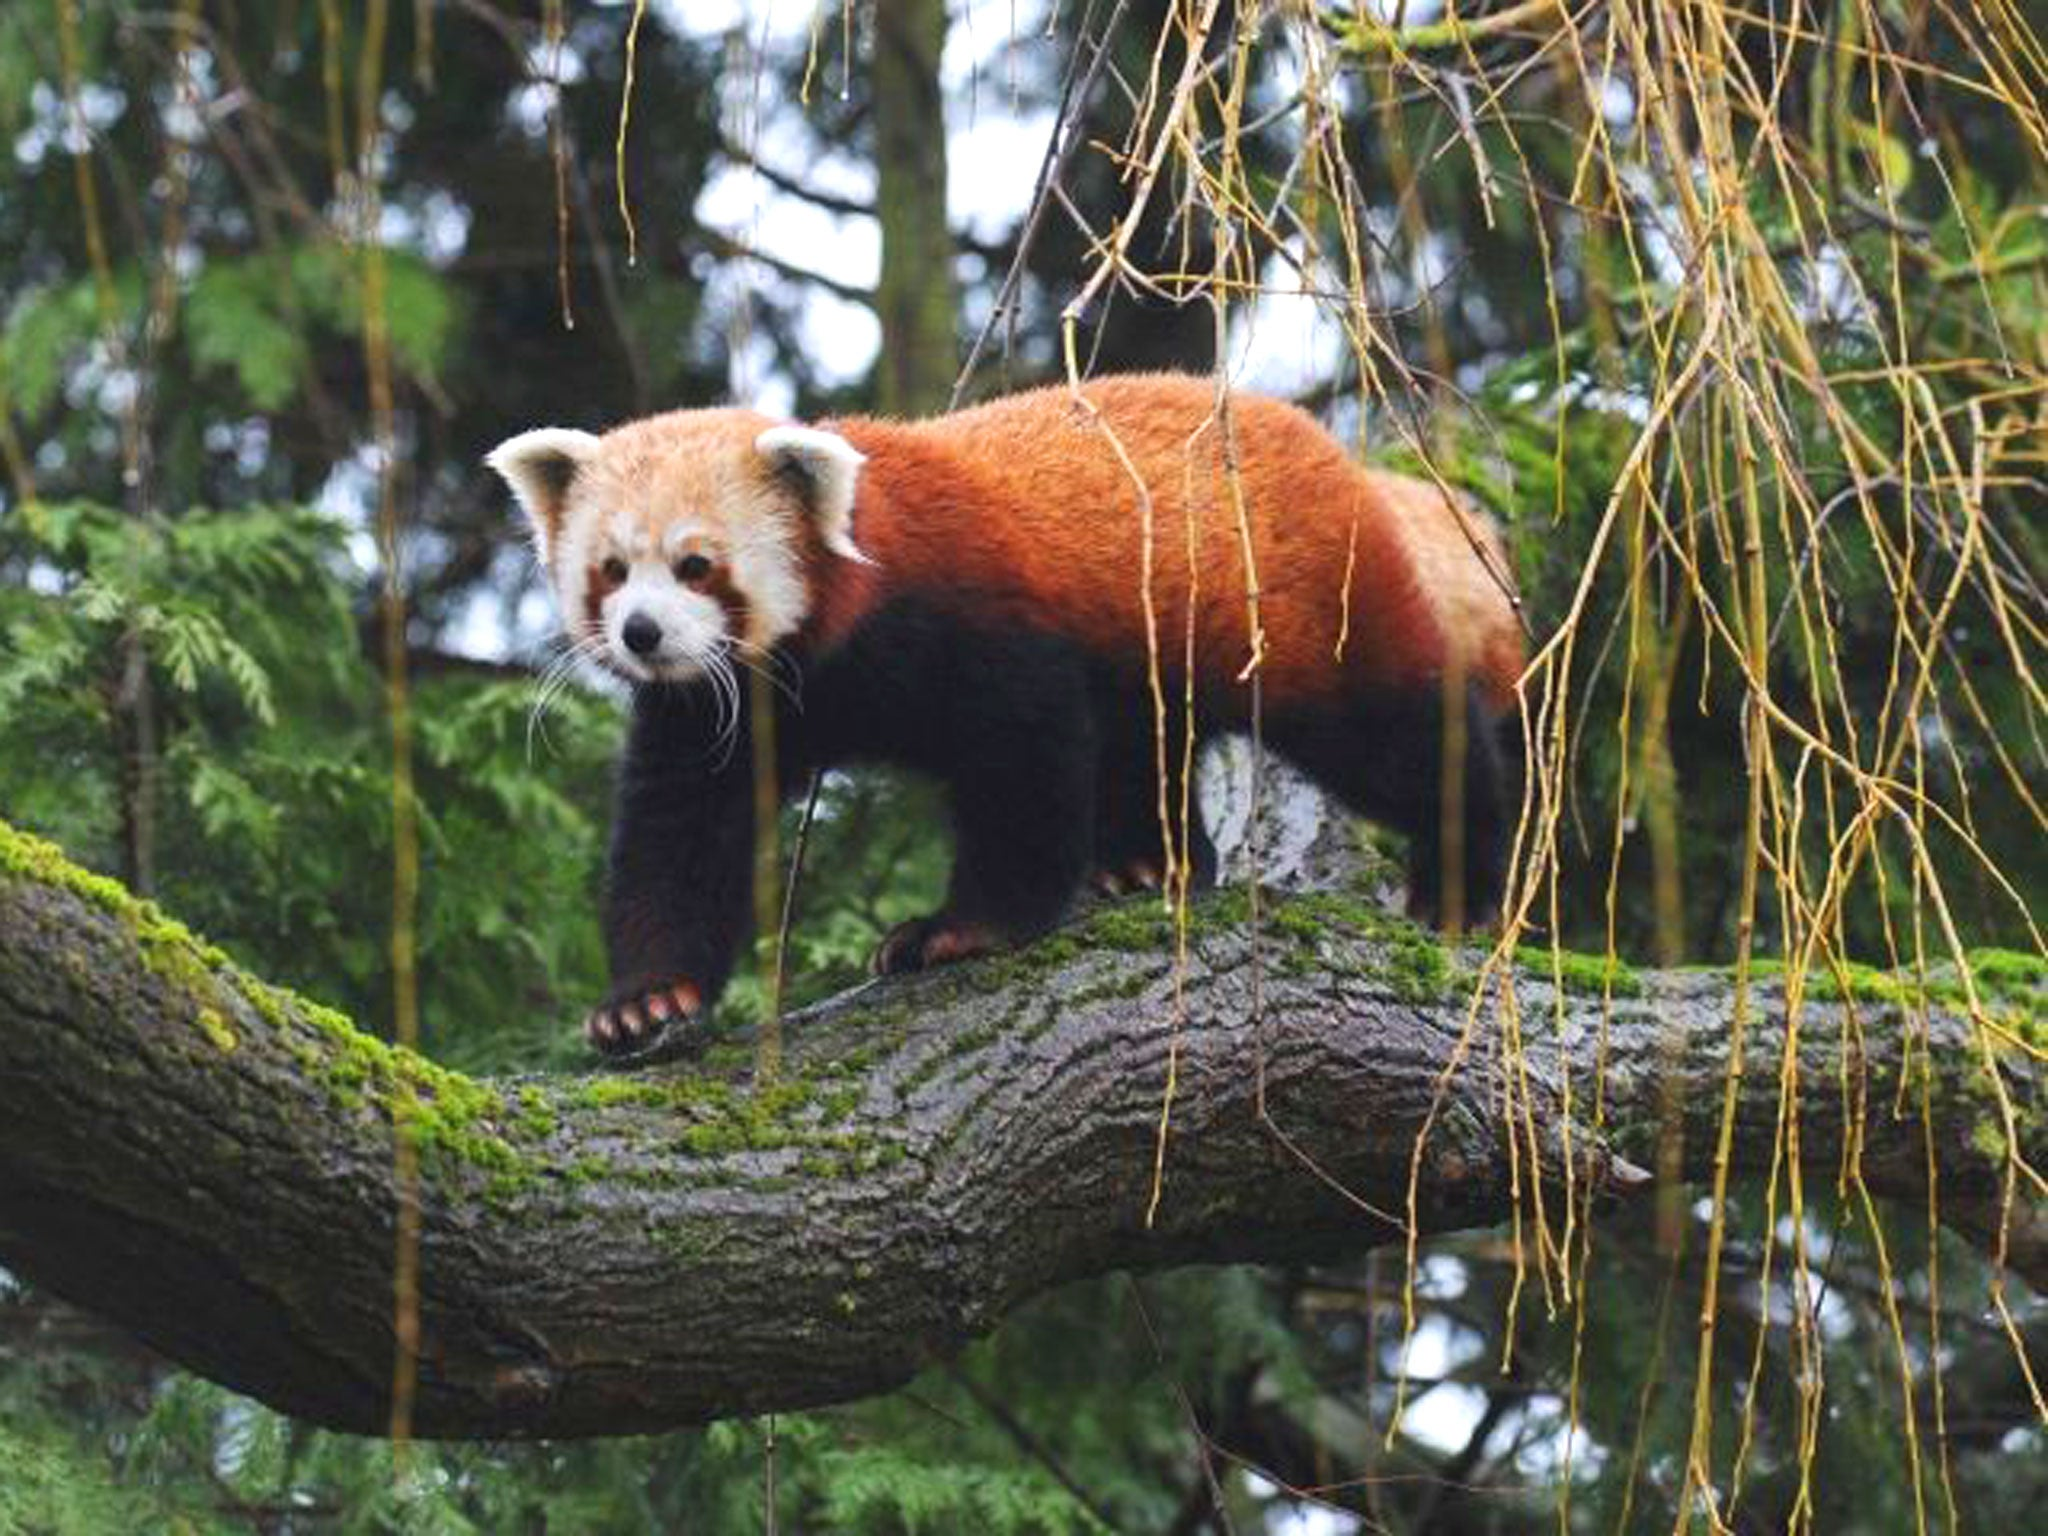 Birth of twin red pandas gives hope for future of one of the